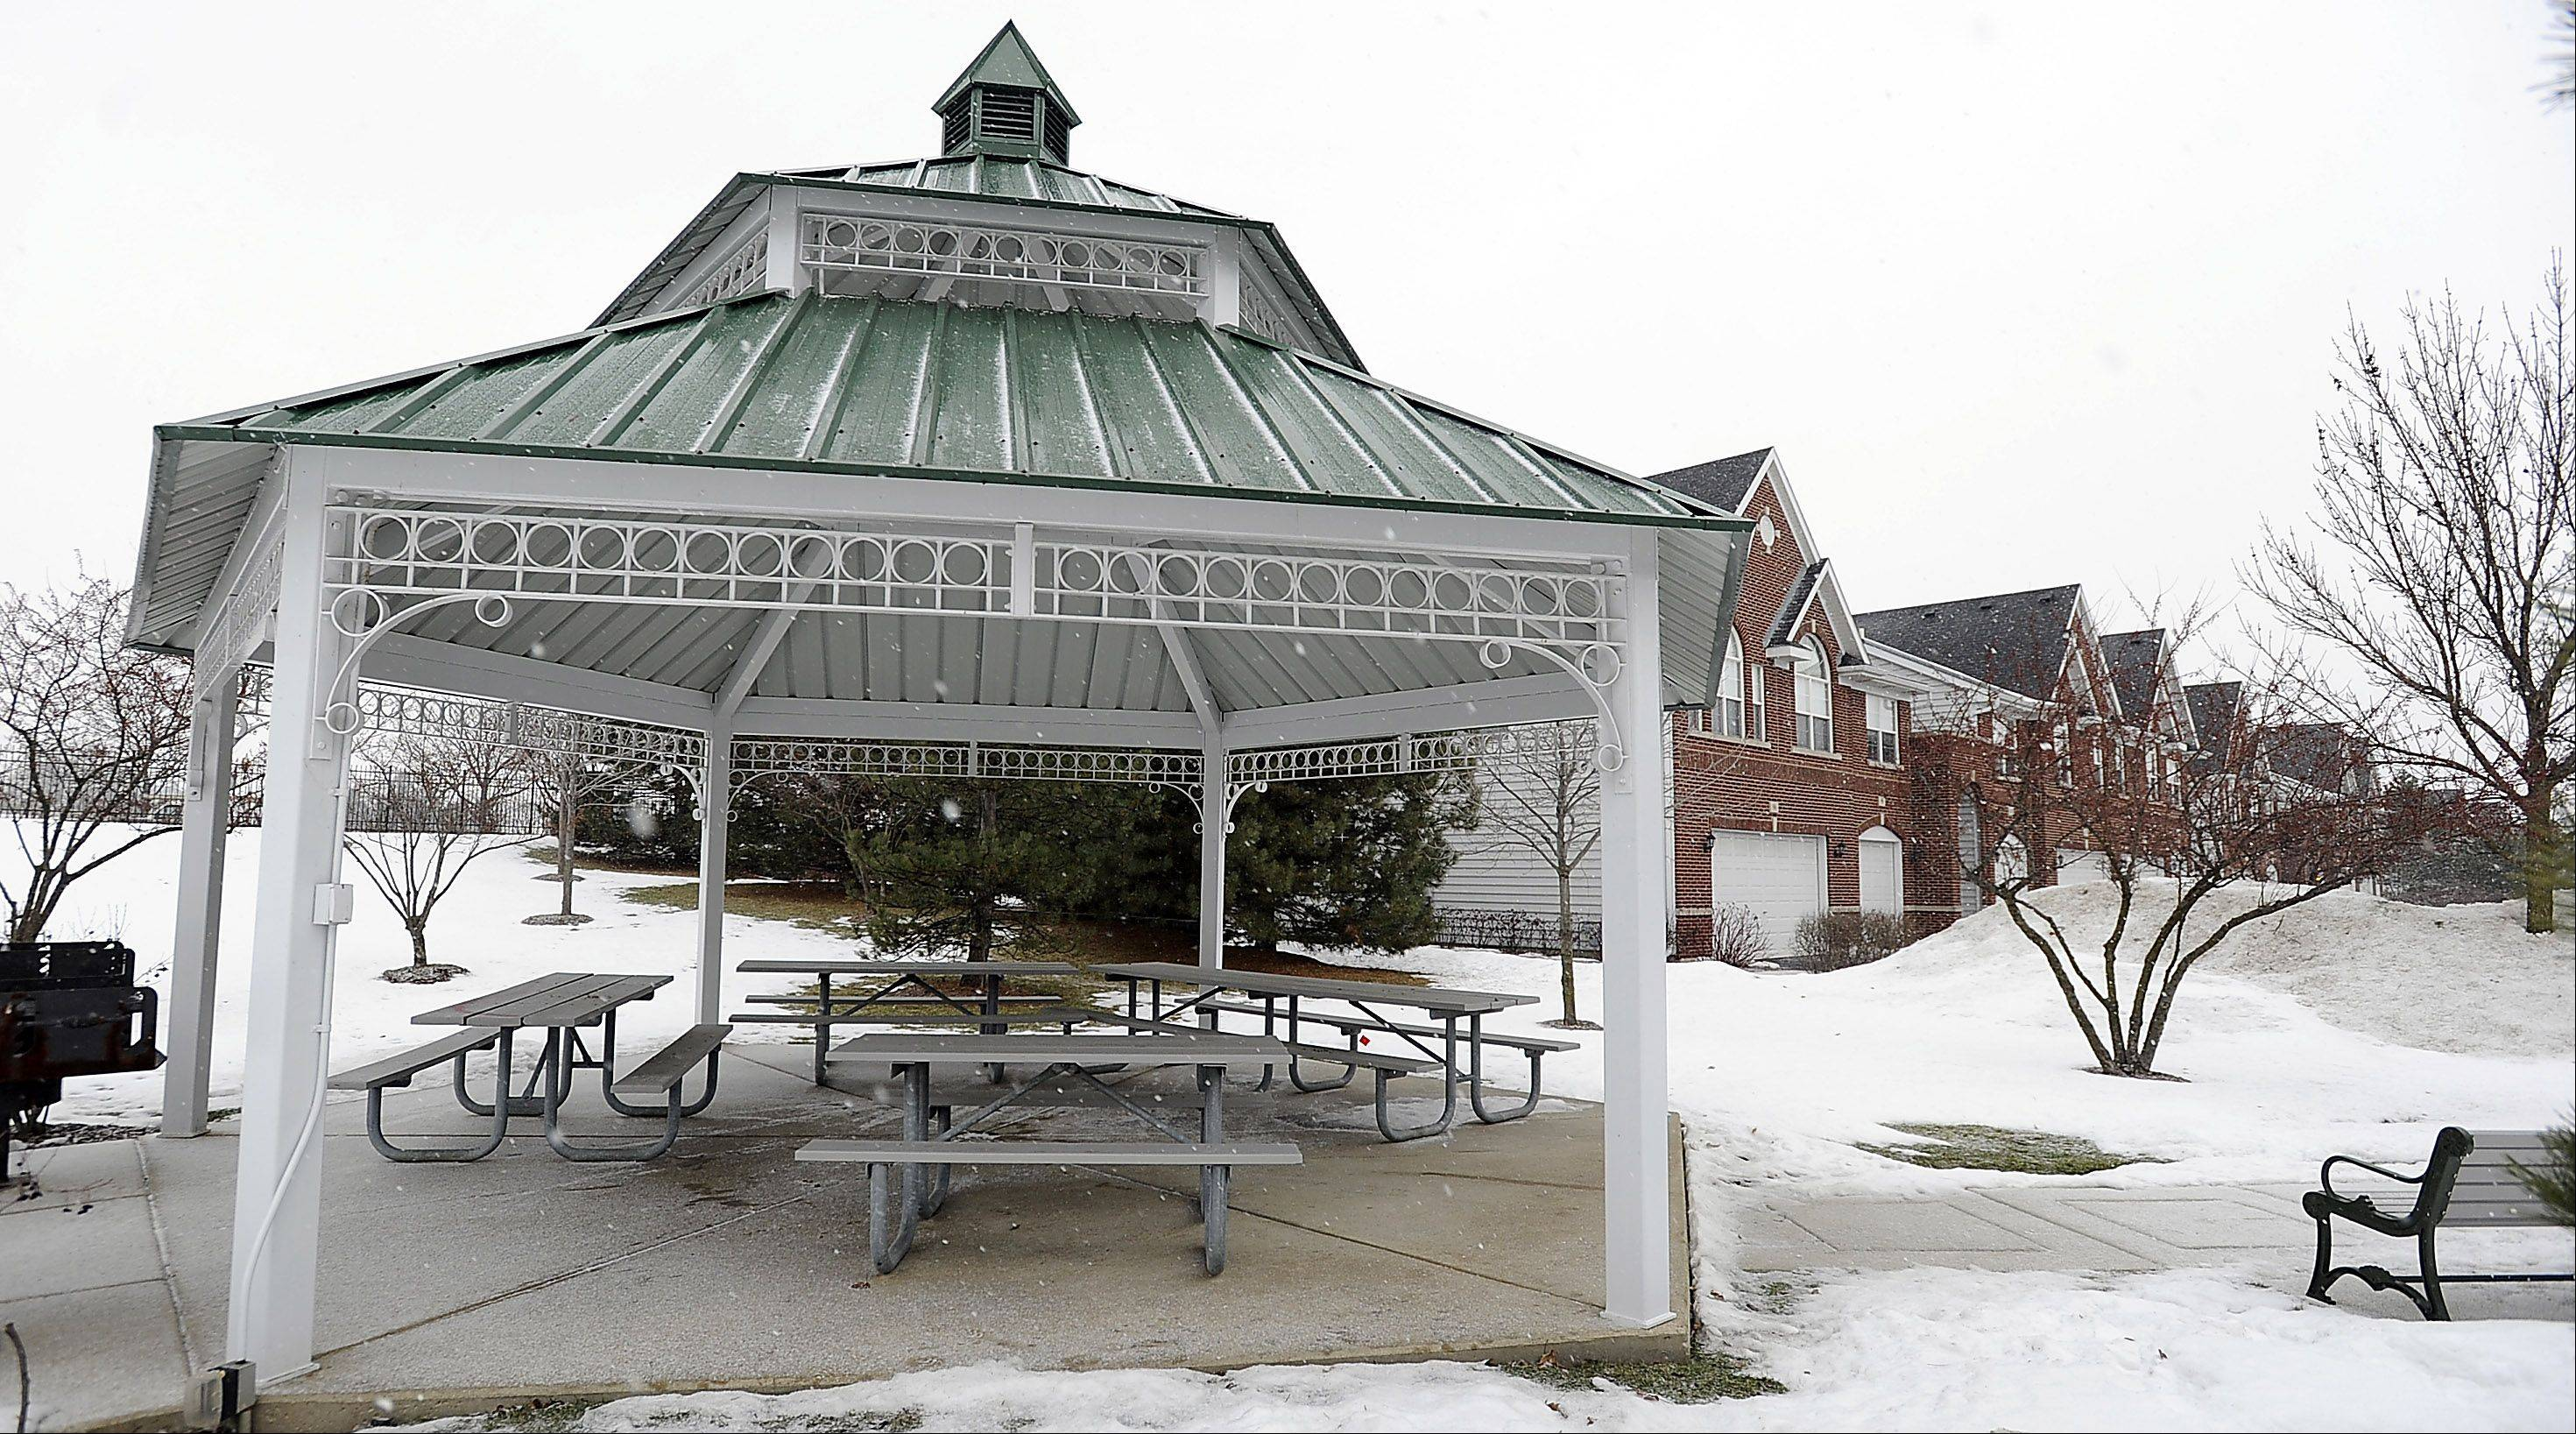 Olde Schaumburg neighbors enjoy their own private gazebo and walking trail.